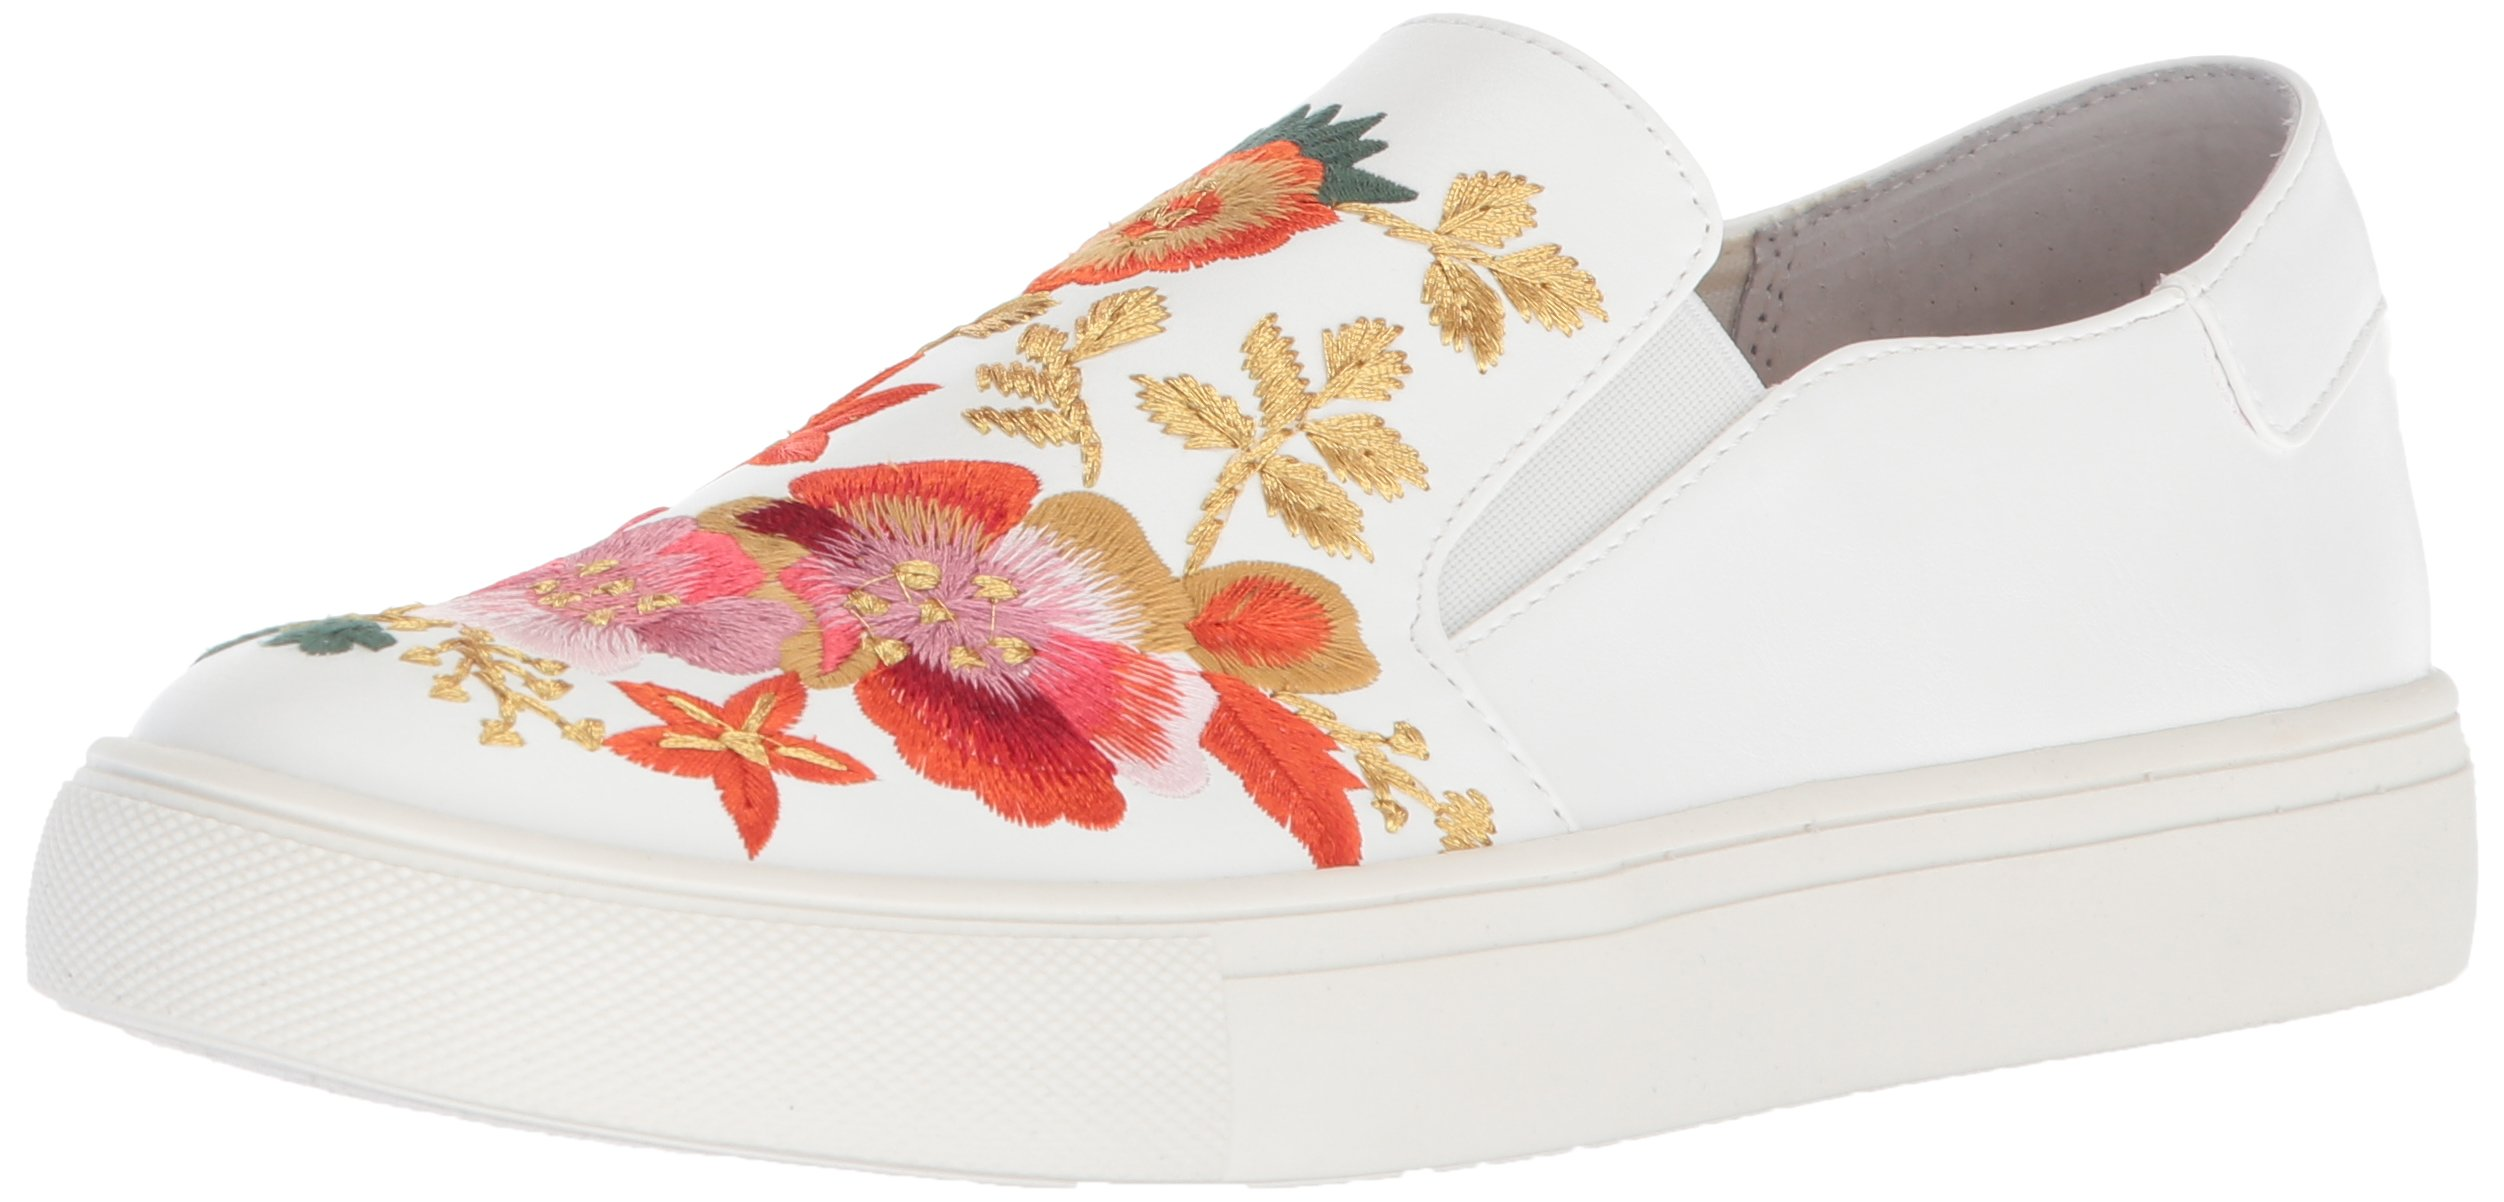 Nanette Lepore Women's Whimsical Sneaker, White Embroidery, 8.5 M US